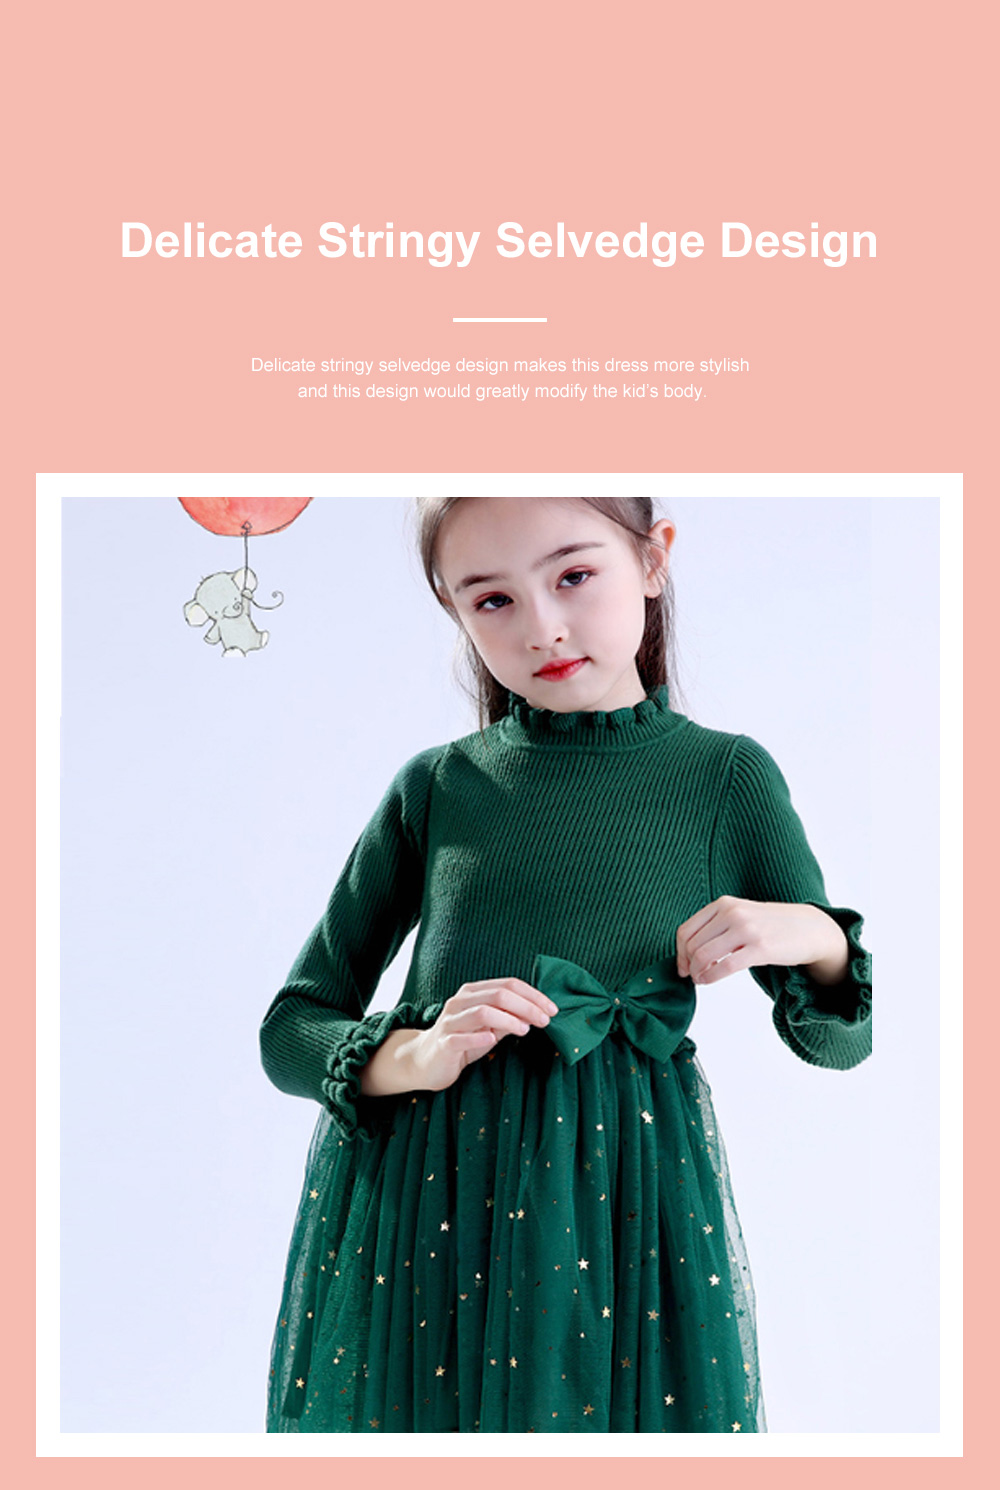 Fancy Elegant Winter Spring Autumn Children Girls Long-sleeve Sweater Dress Veil Princess Skirt with Star Sparkle Bowknot Decoration 4